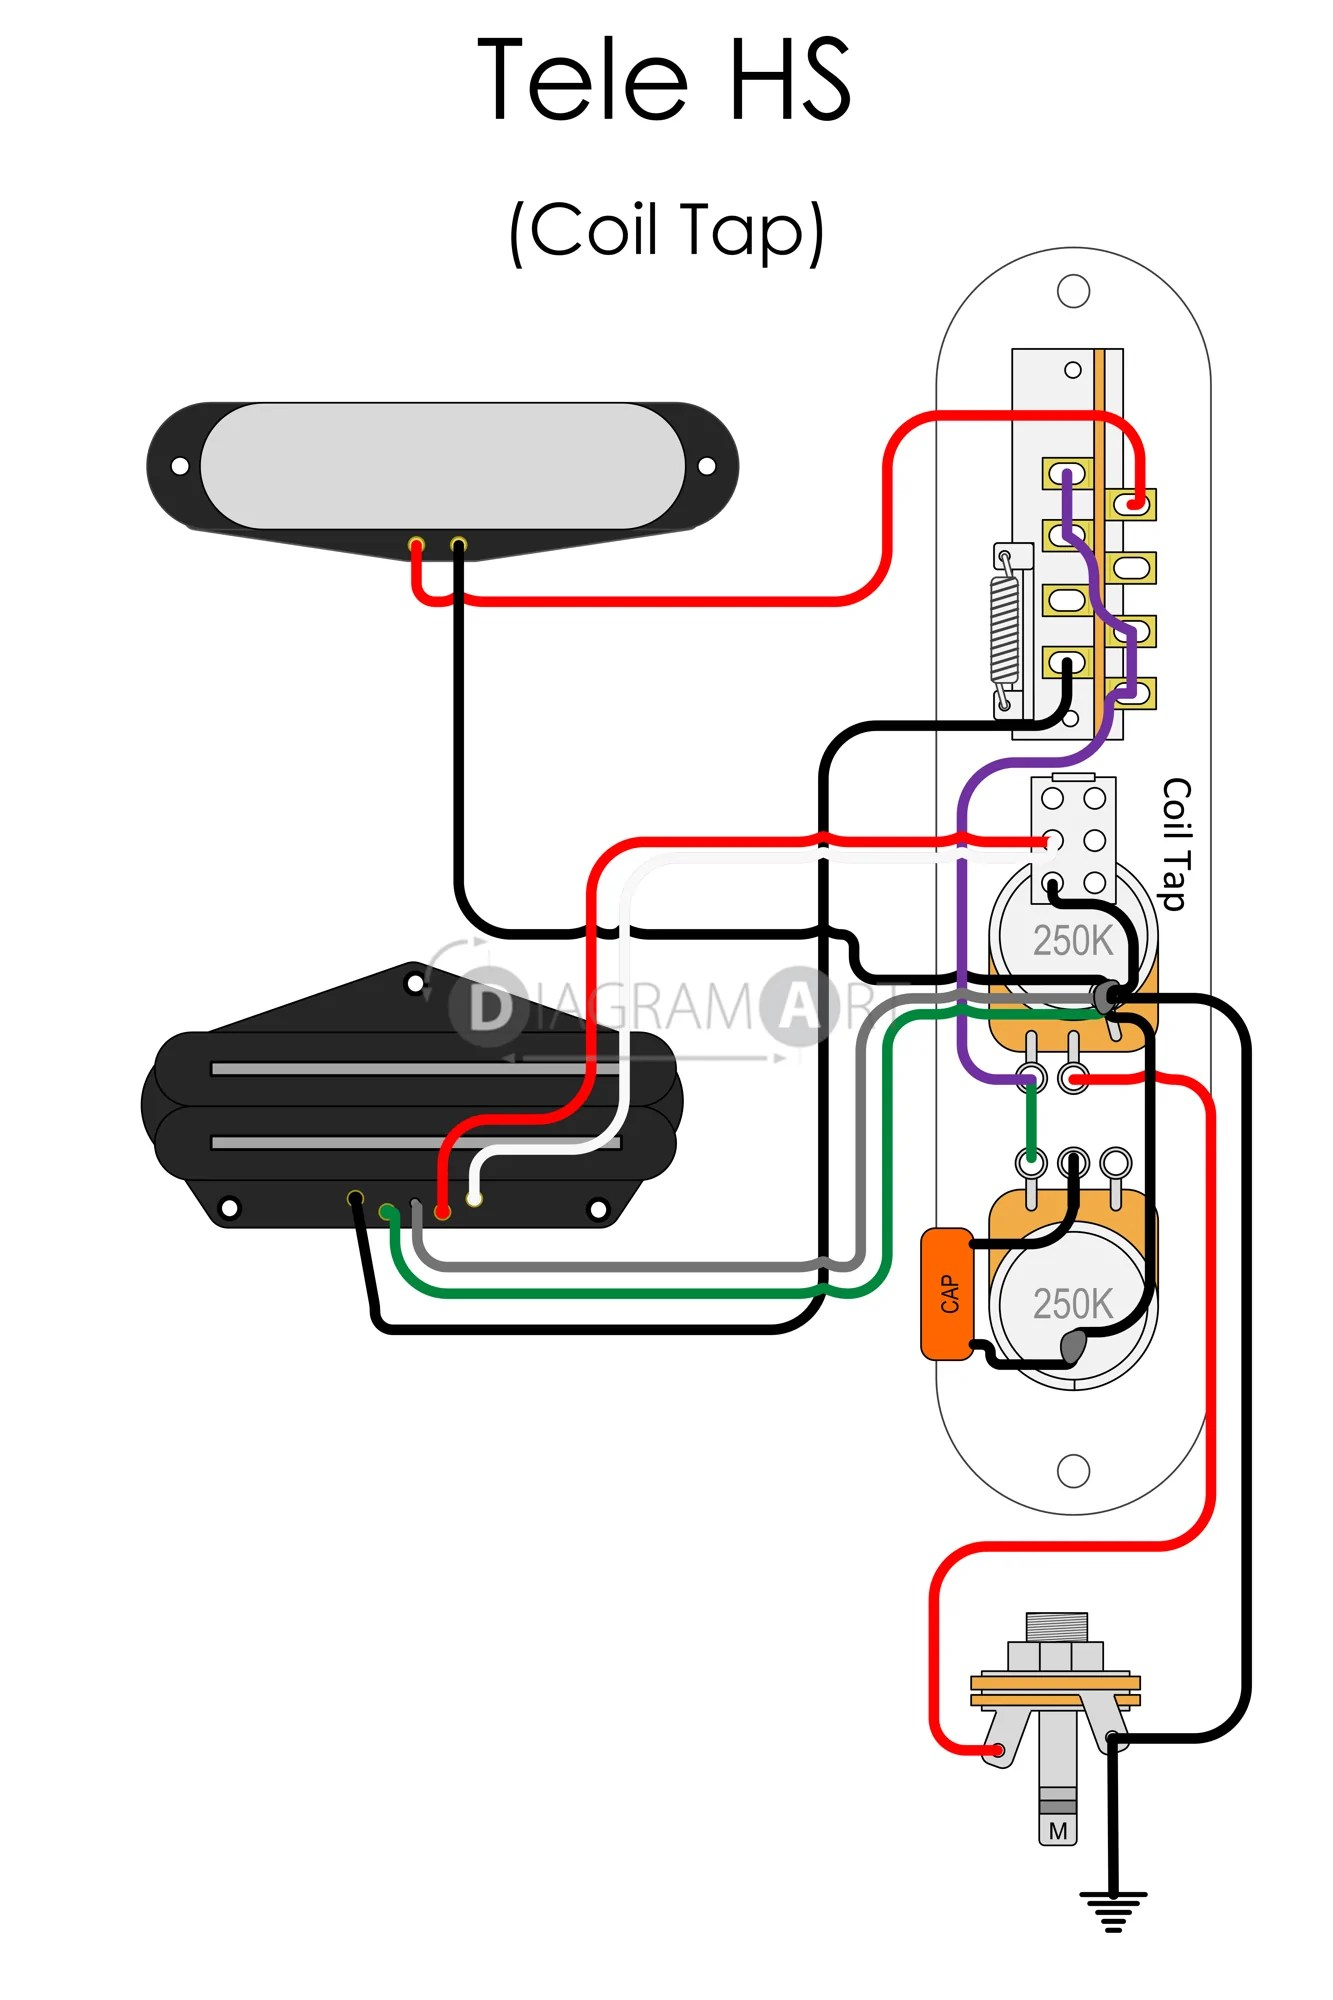 hight resolution of guitar coil tap wiring diagrams box wiring diagram relay wiring diagram guitar coil tap wiring diagrams